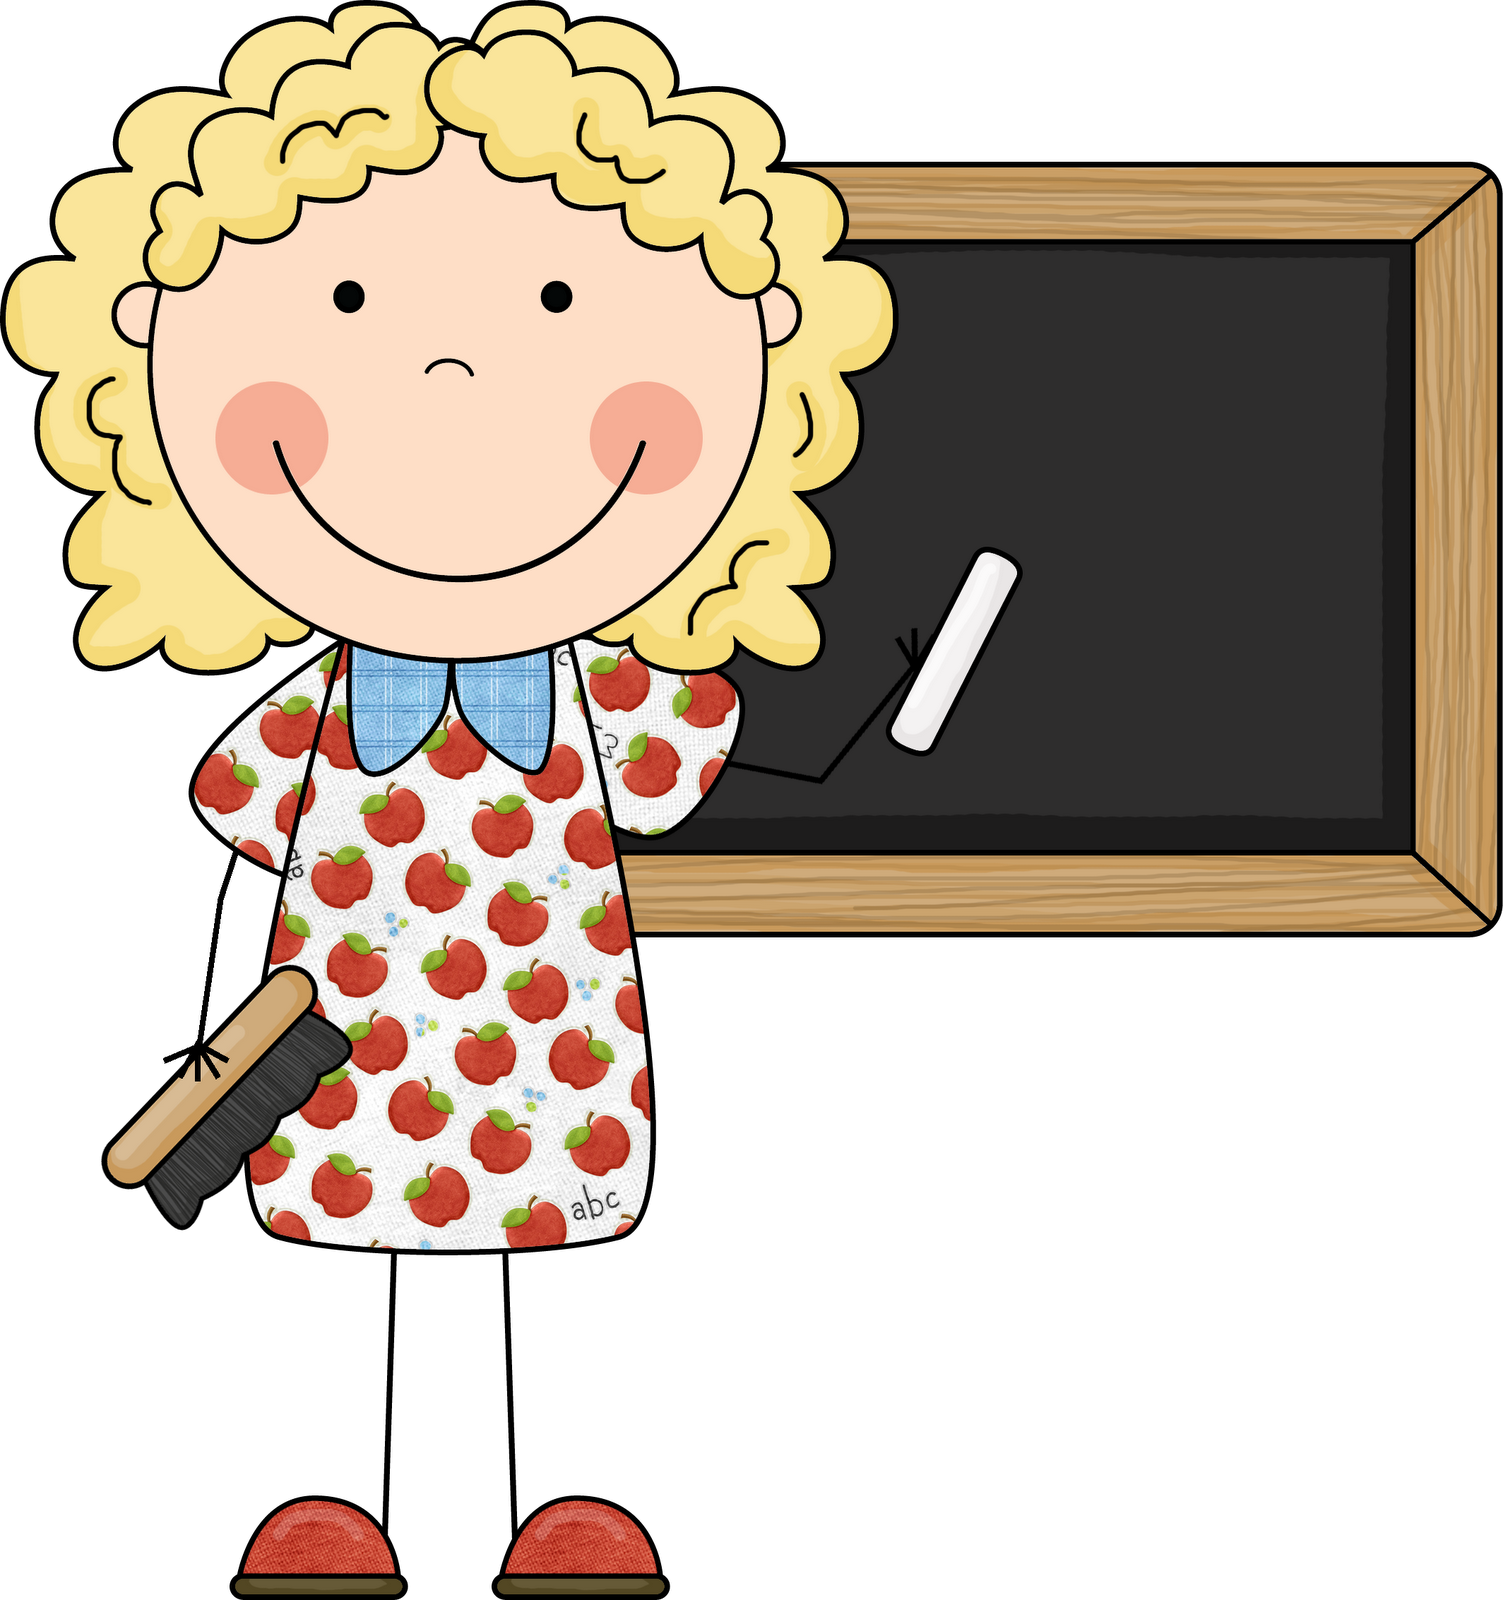 Free Preschool Clipart For Teachers